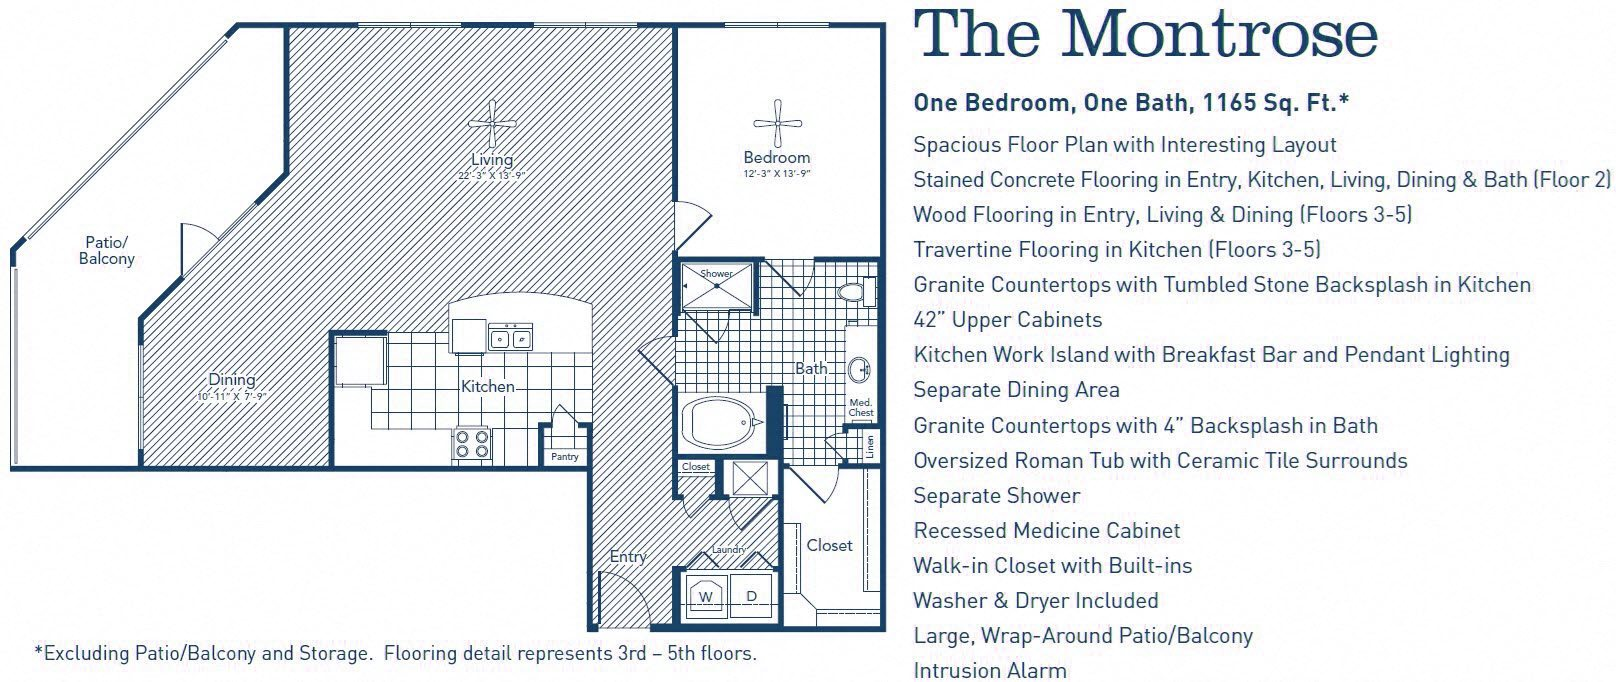 The Montrose Floor Plan 9